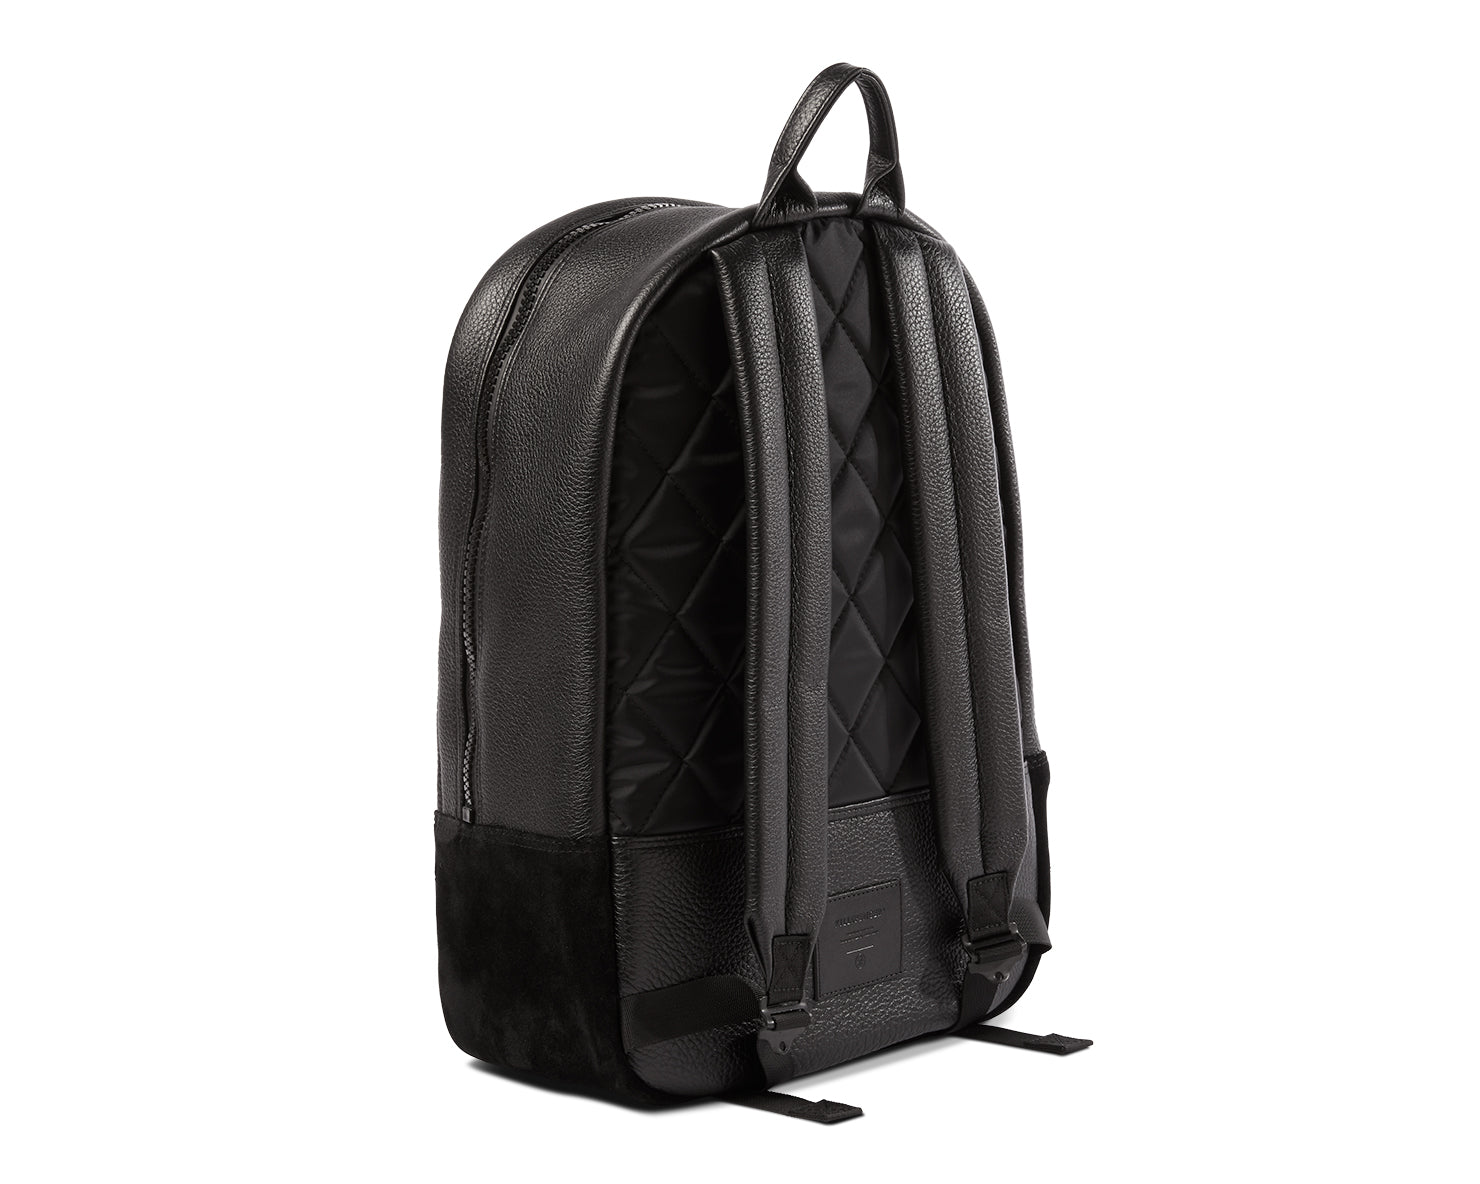 DAYPACK | KILLSPENCER® - Black Zippers